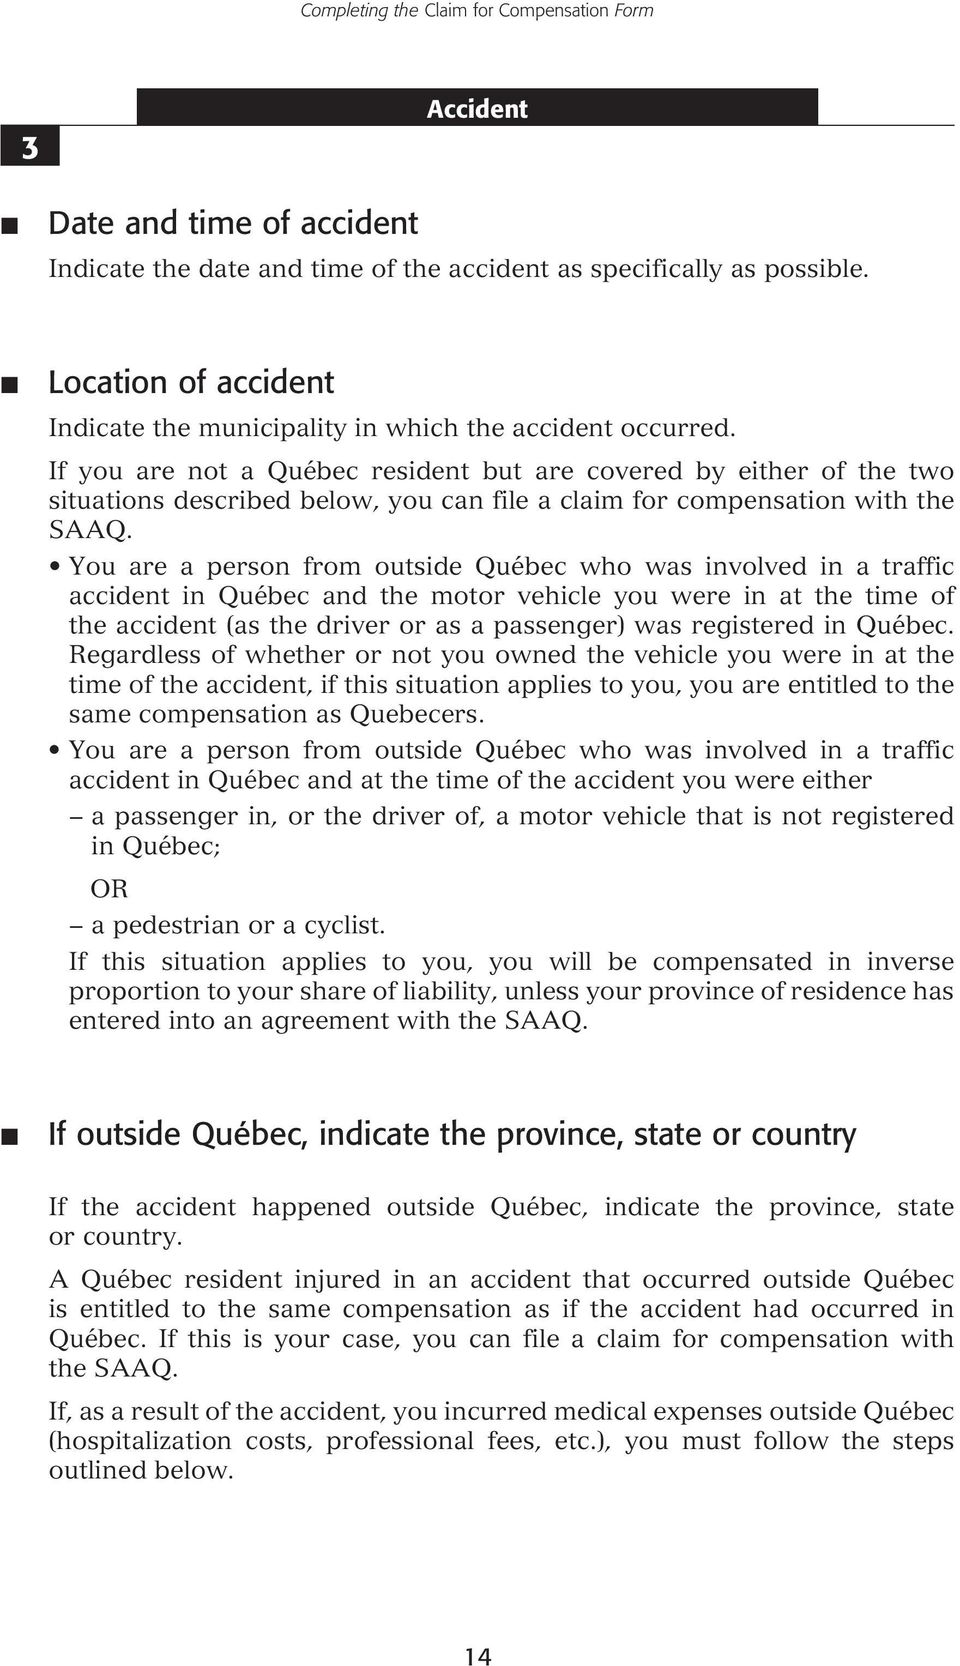 If you are not a Québec resident but are covered by either of the two situations described below, you can file a claim for compensation with the SAAQ.